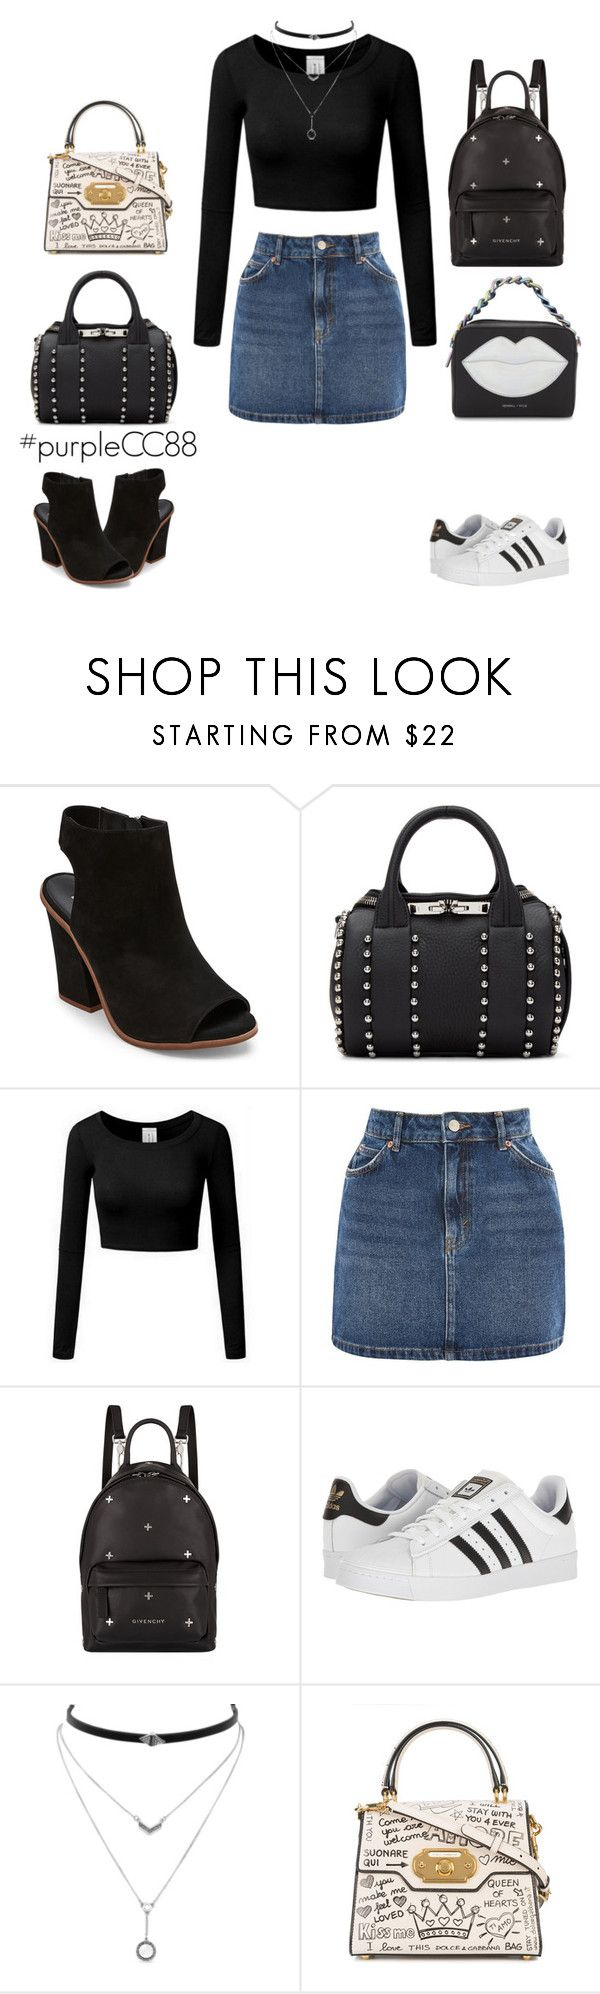 """""""Comfy + Chic + Black"""" by purplecc88criss on Polyvore featuring Steve Madden, Alexander Wang, Topshop, Givenchy, adidas, Jessica Simpson, Dolce&Gabbana and Kendall + Kylie"""